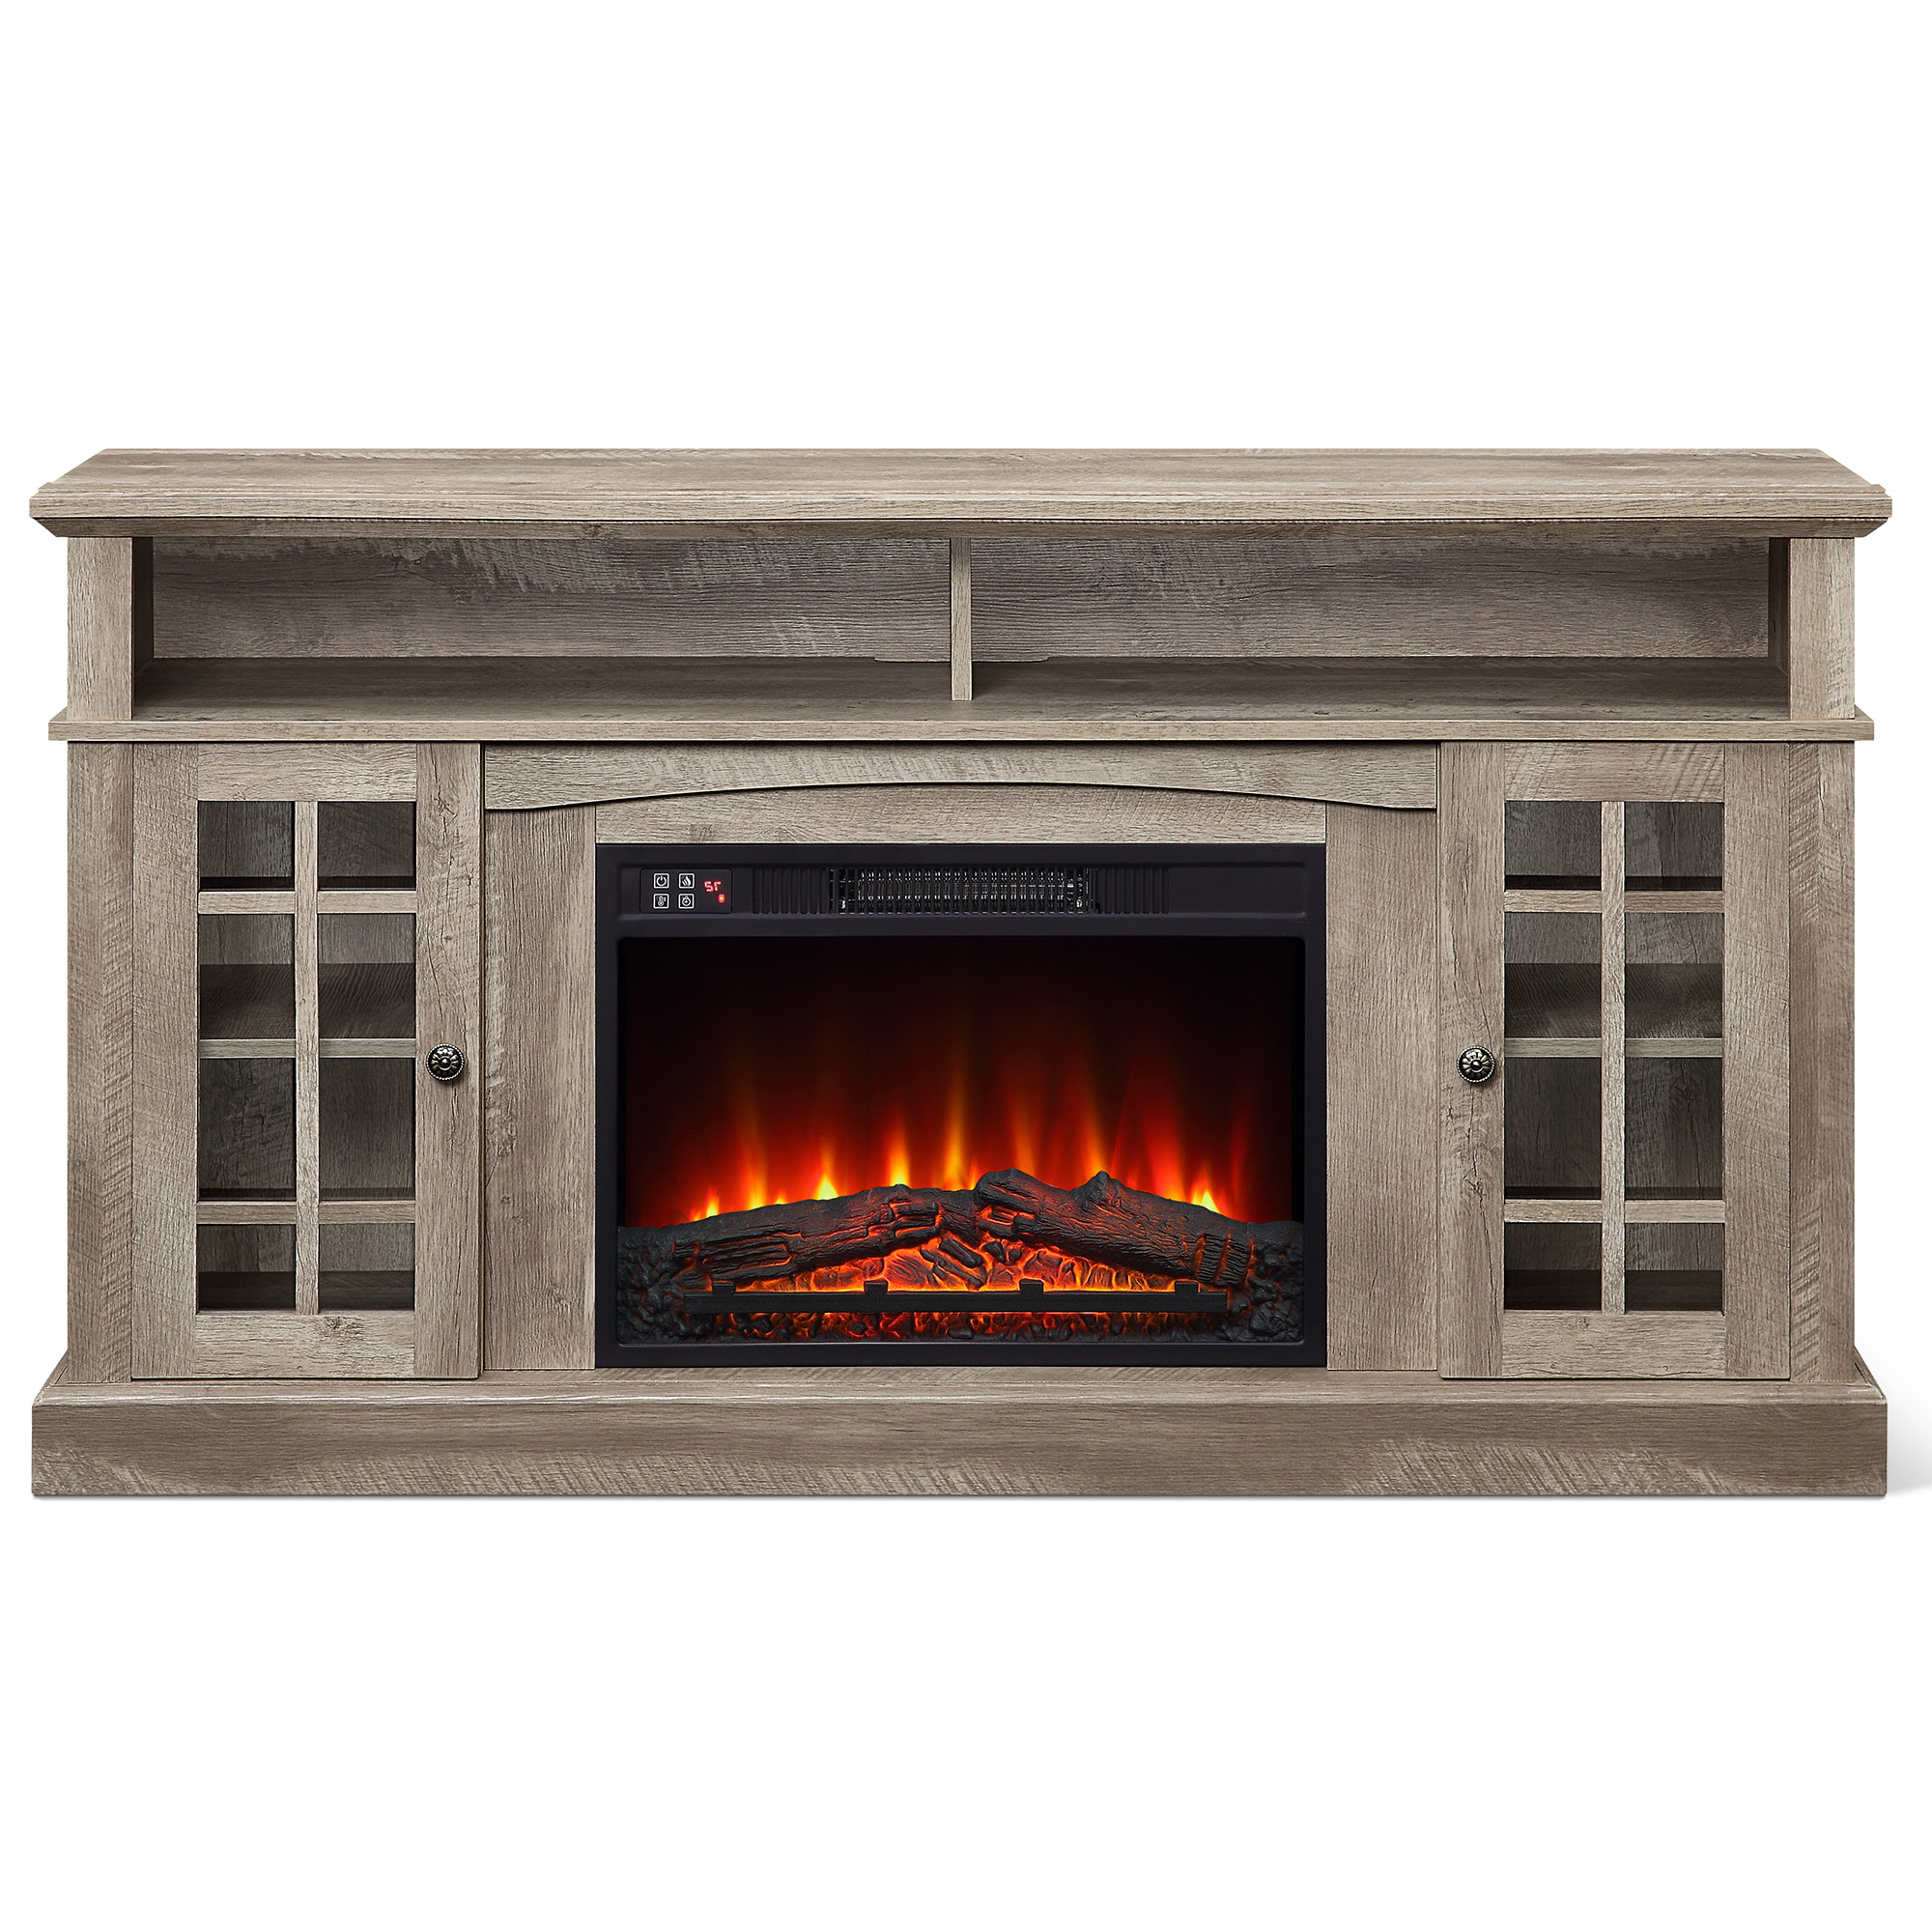 """Brigner Tv Stands For Tvs Up To 65"""" Within Most Current Belleze Fireplace Tv Stand With Remote Control Console (View 24 of 25)"""